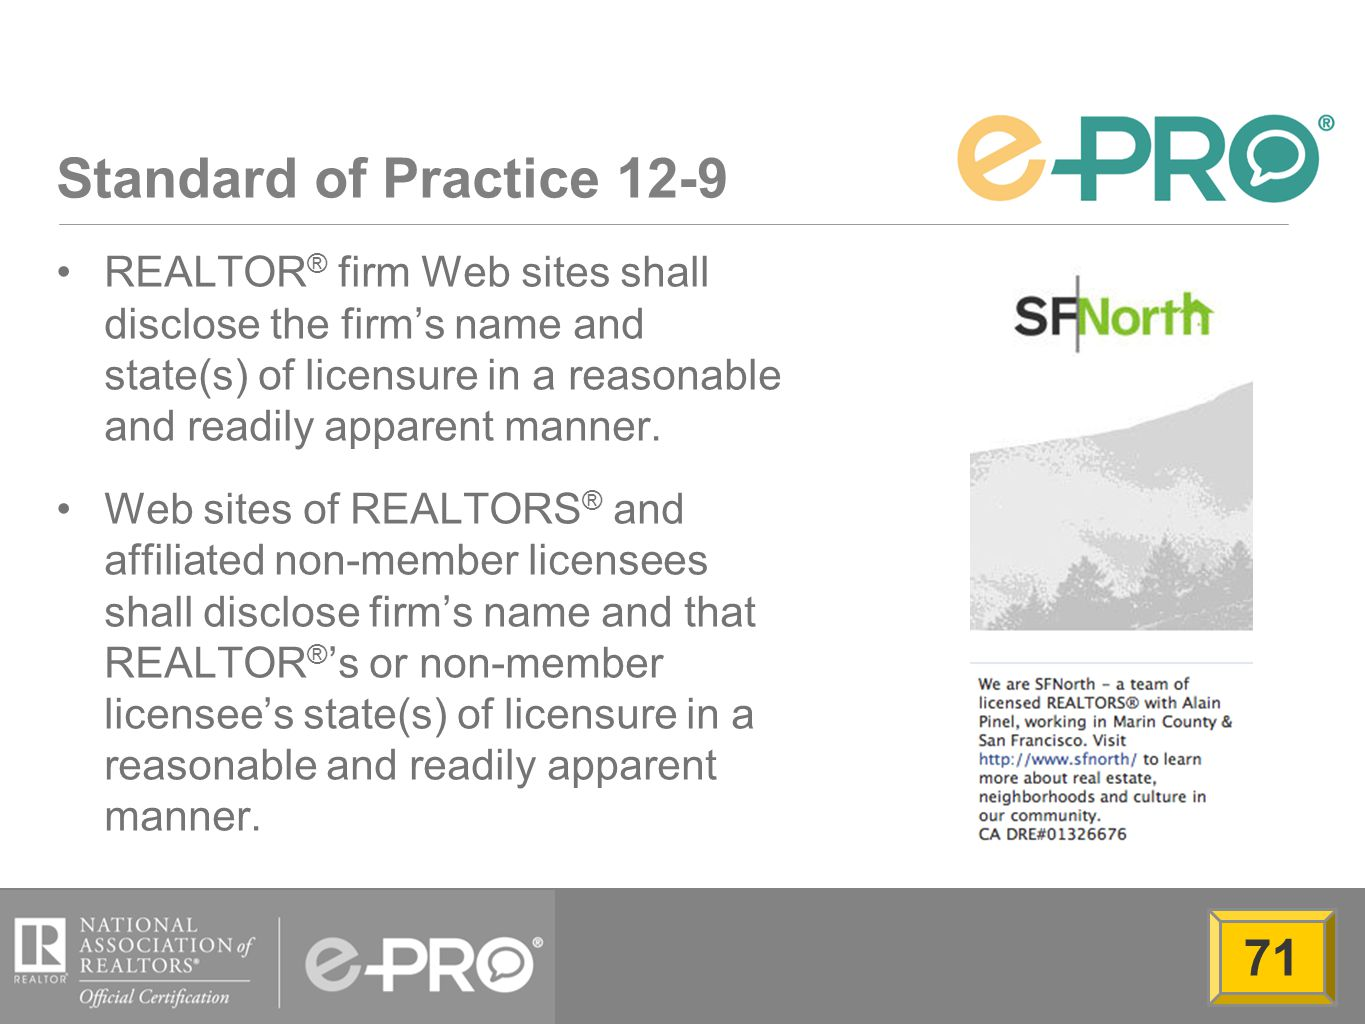 Standard of Practice 12-9 REALTOR ® firm Web sites shall disclose the firm's name and state(s) of licensure in a reasonable and readily apparent manner.